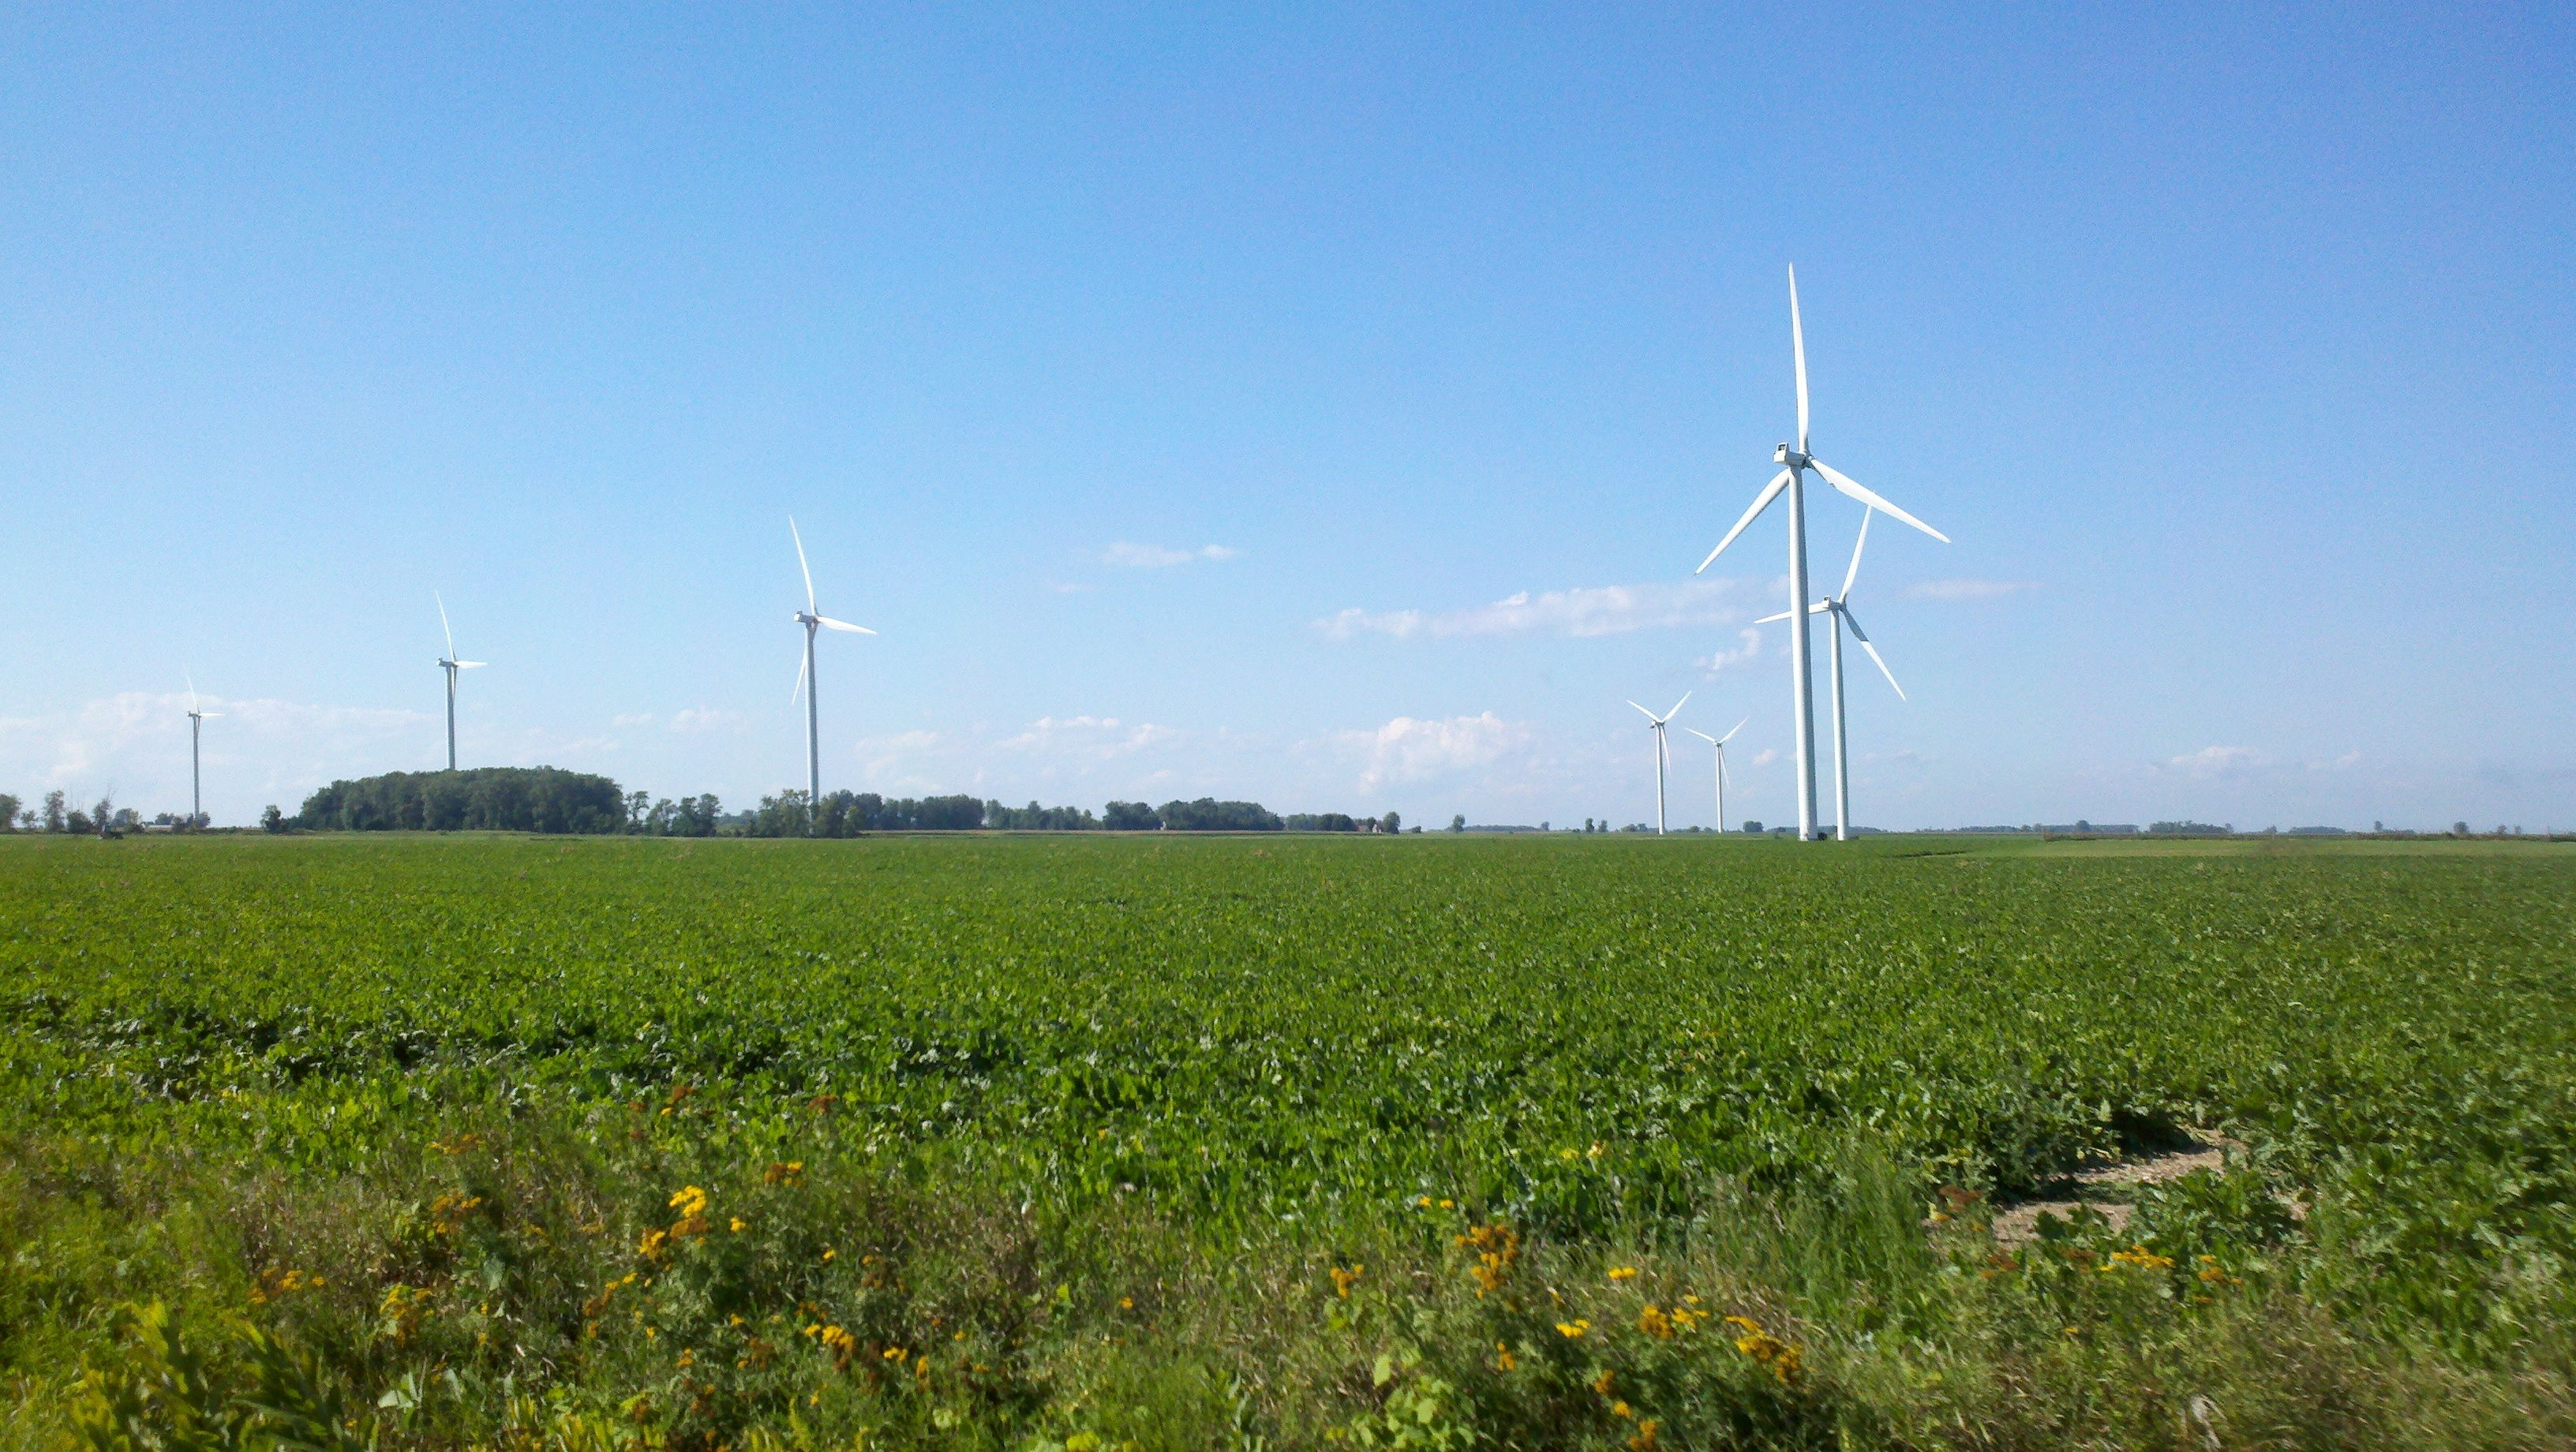 Michigan gratiot county breckenridge - Largest Wind Farm In Michigan Rises From The Cornfields In Gratiot County